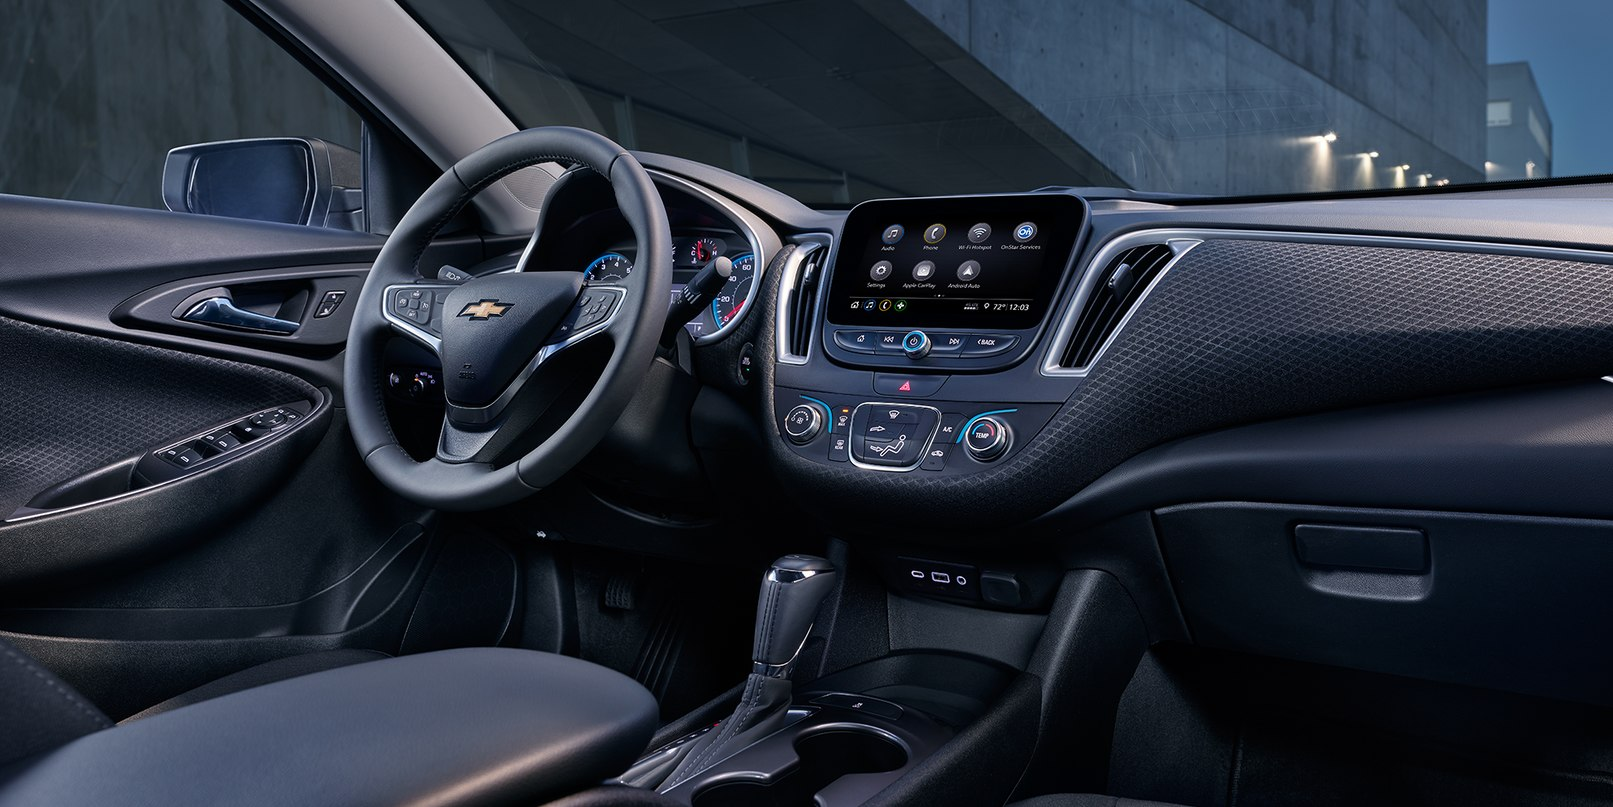 2019 Chevrolet Equinox Center Console